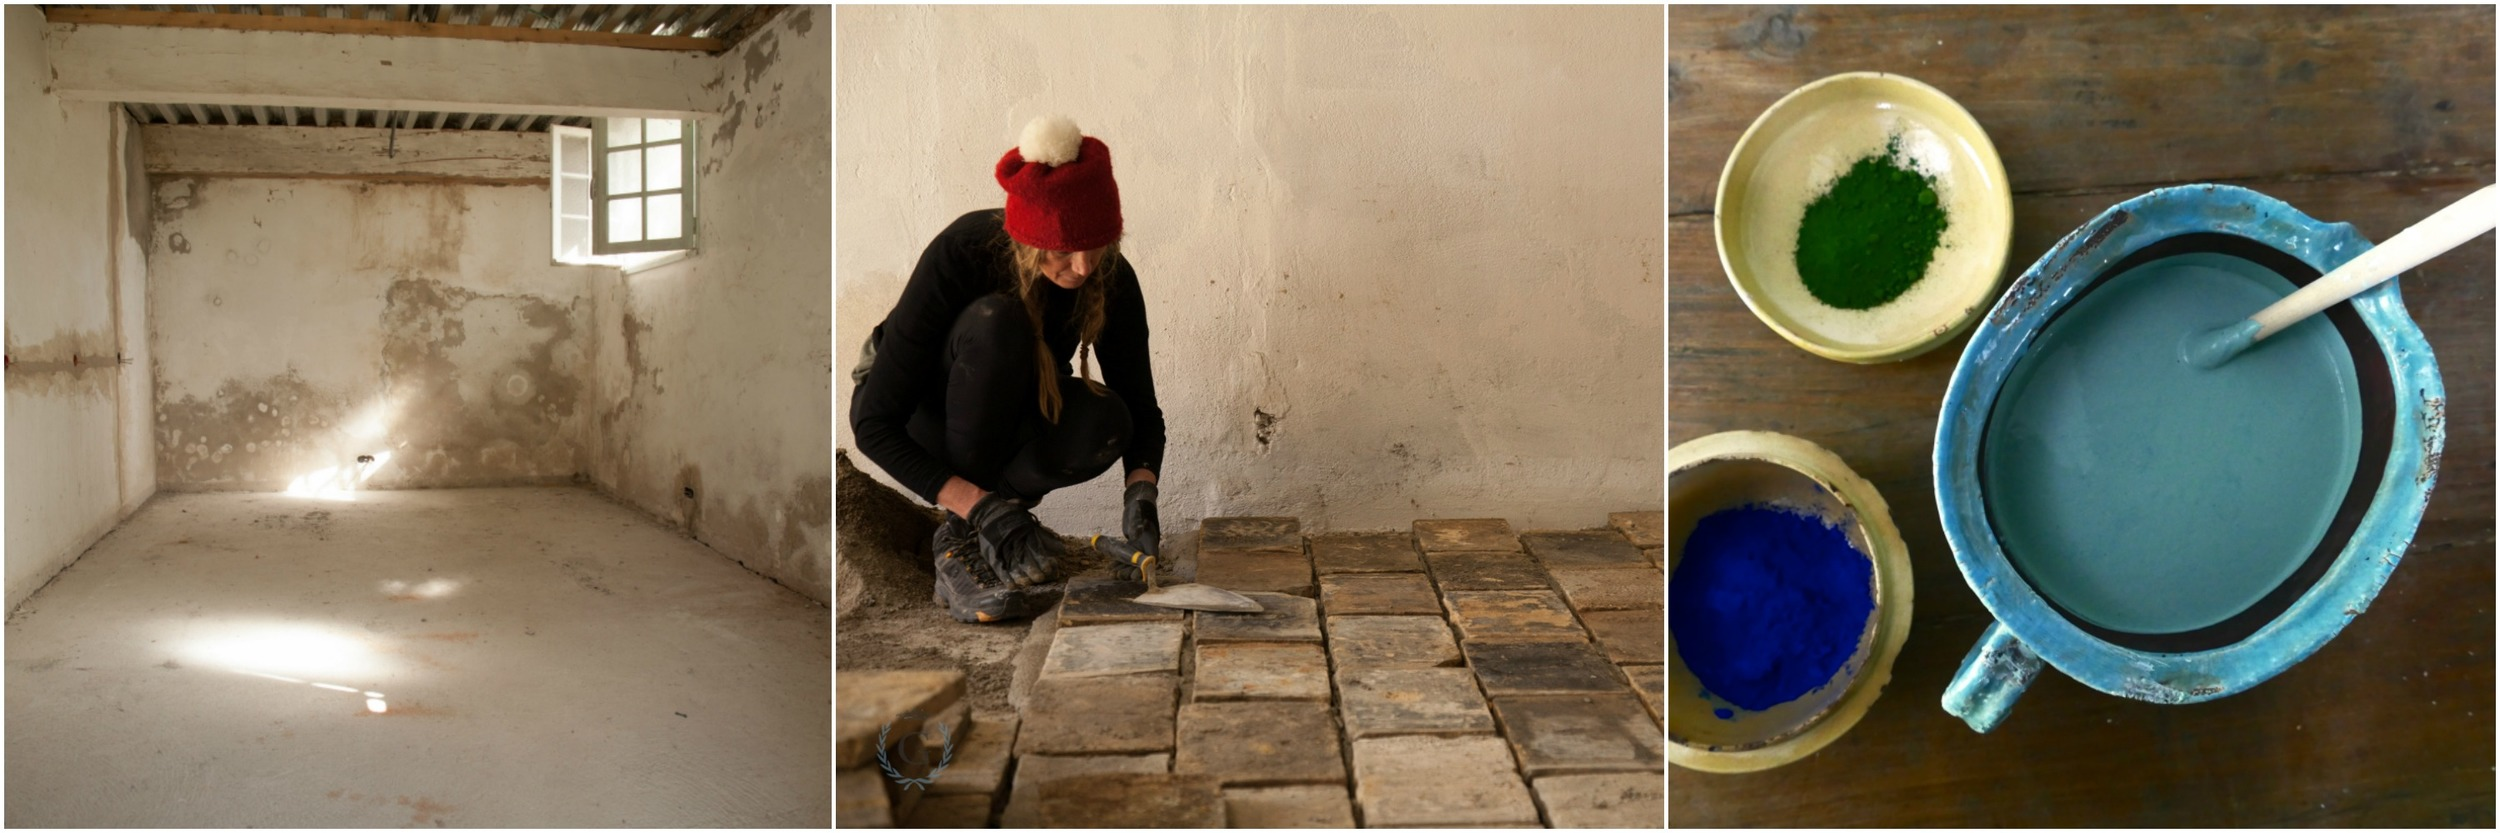 Château laundry. Re-laying terracotta tiles and mixing original paint colour.